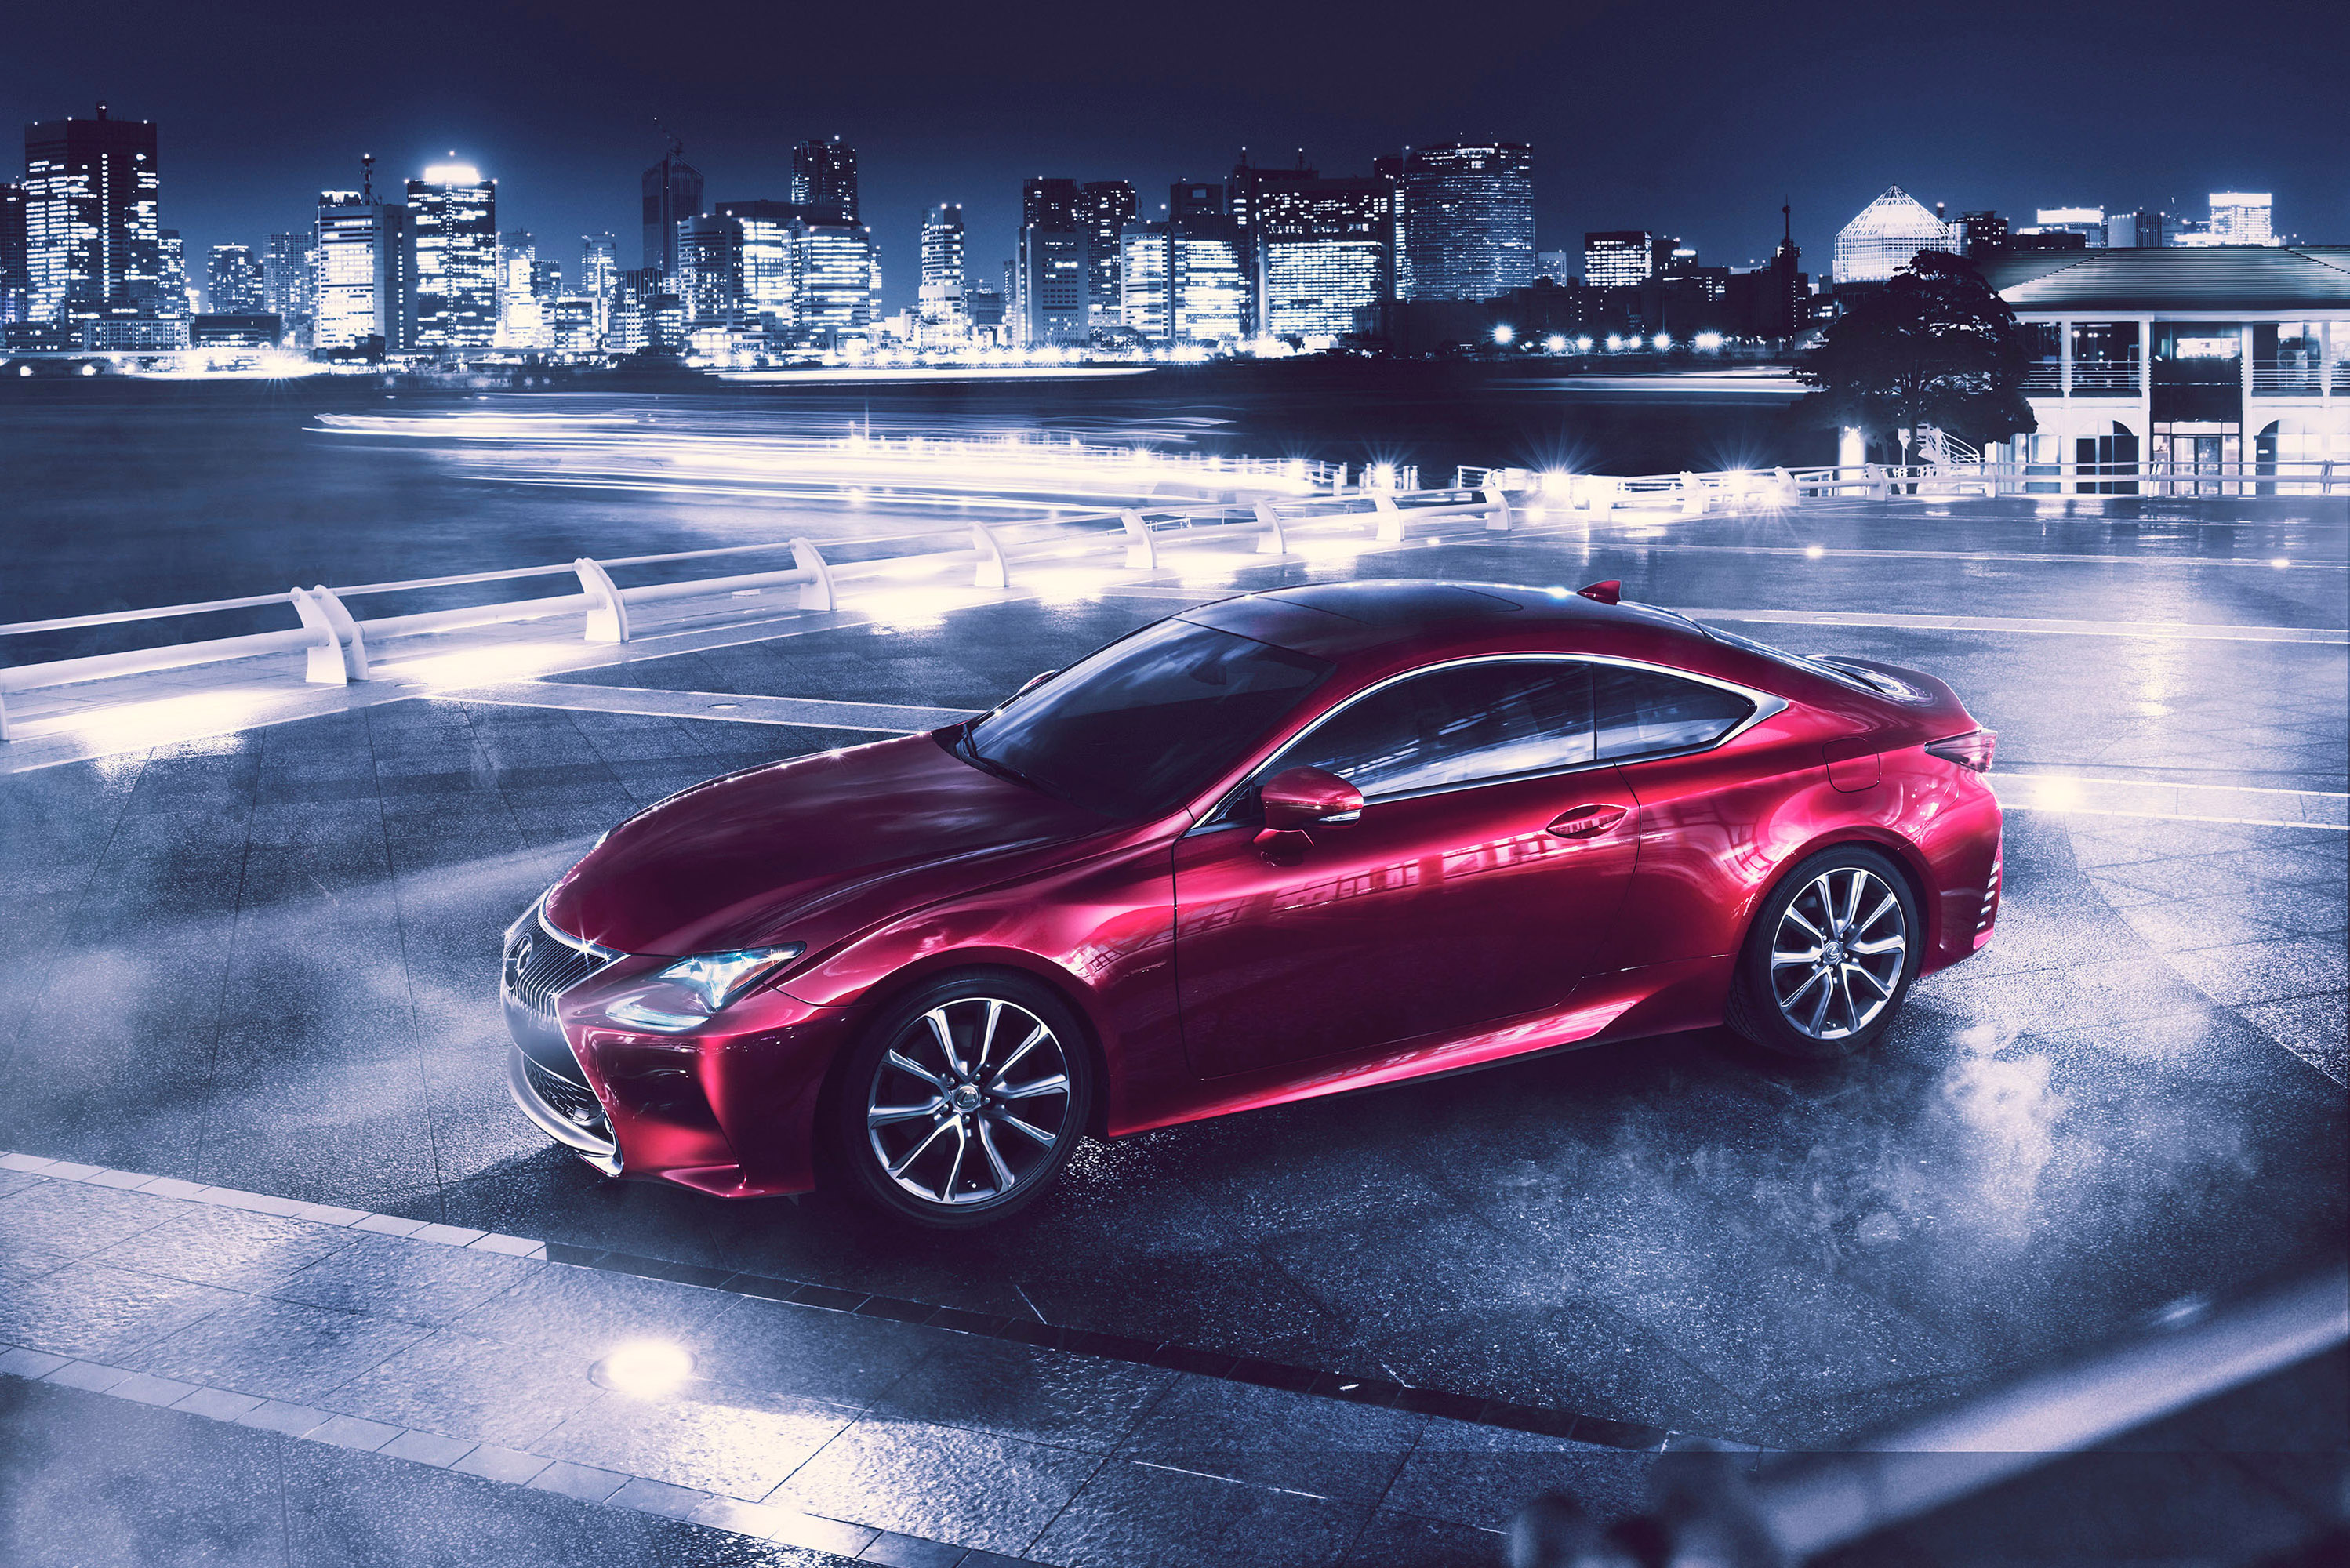 2014 Lexus RC Coupe at the 2013 Tokyo Motor Show